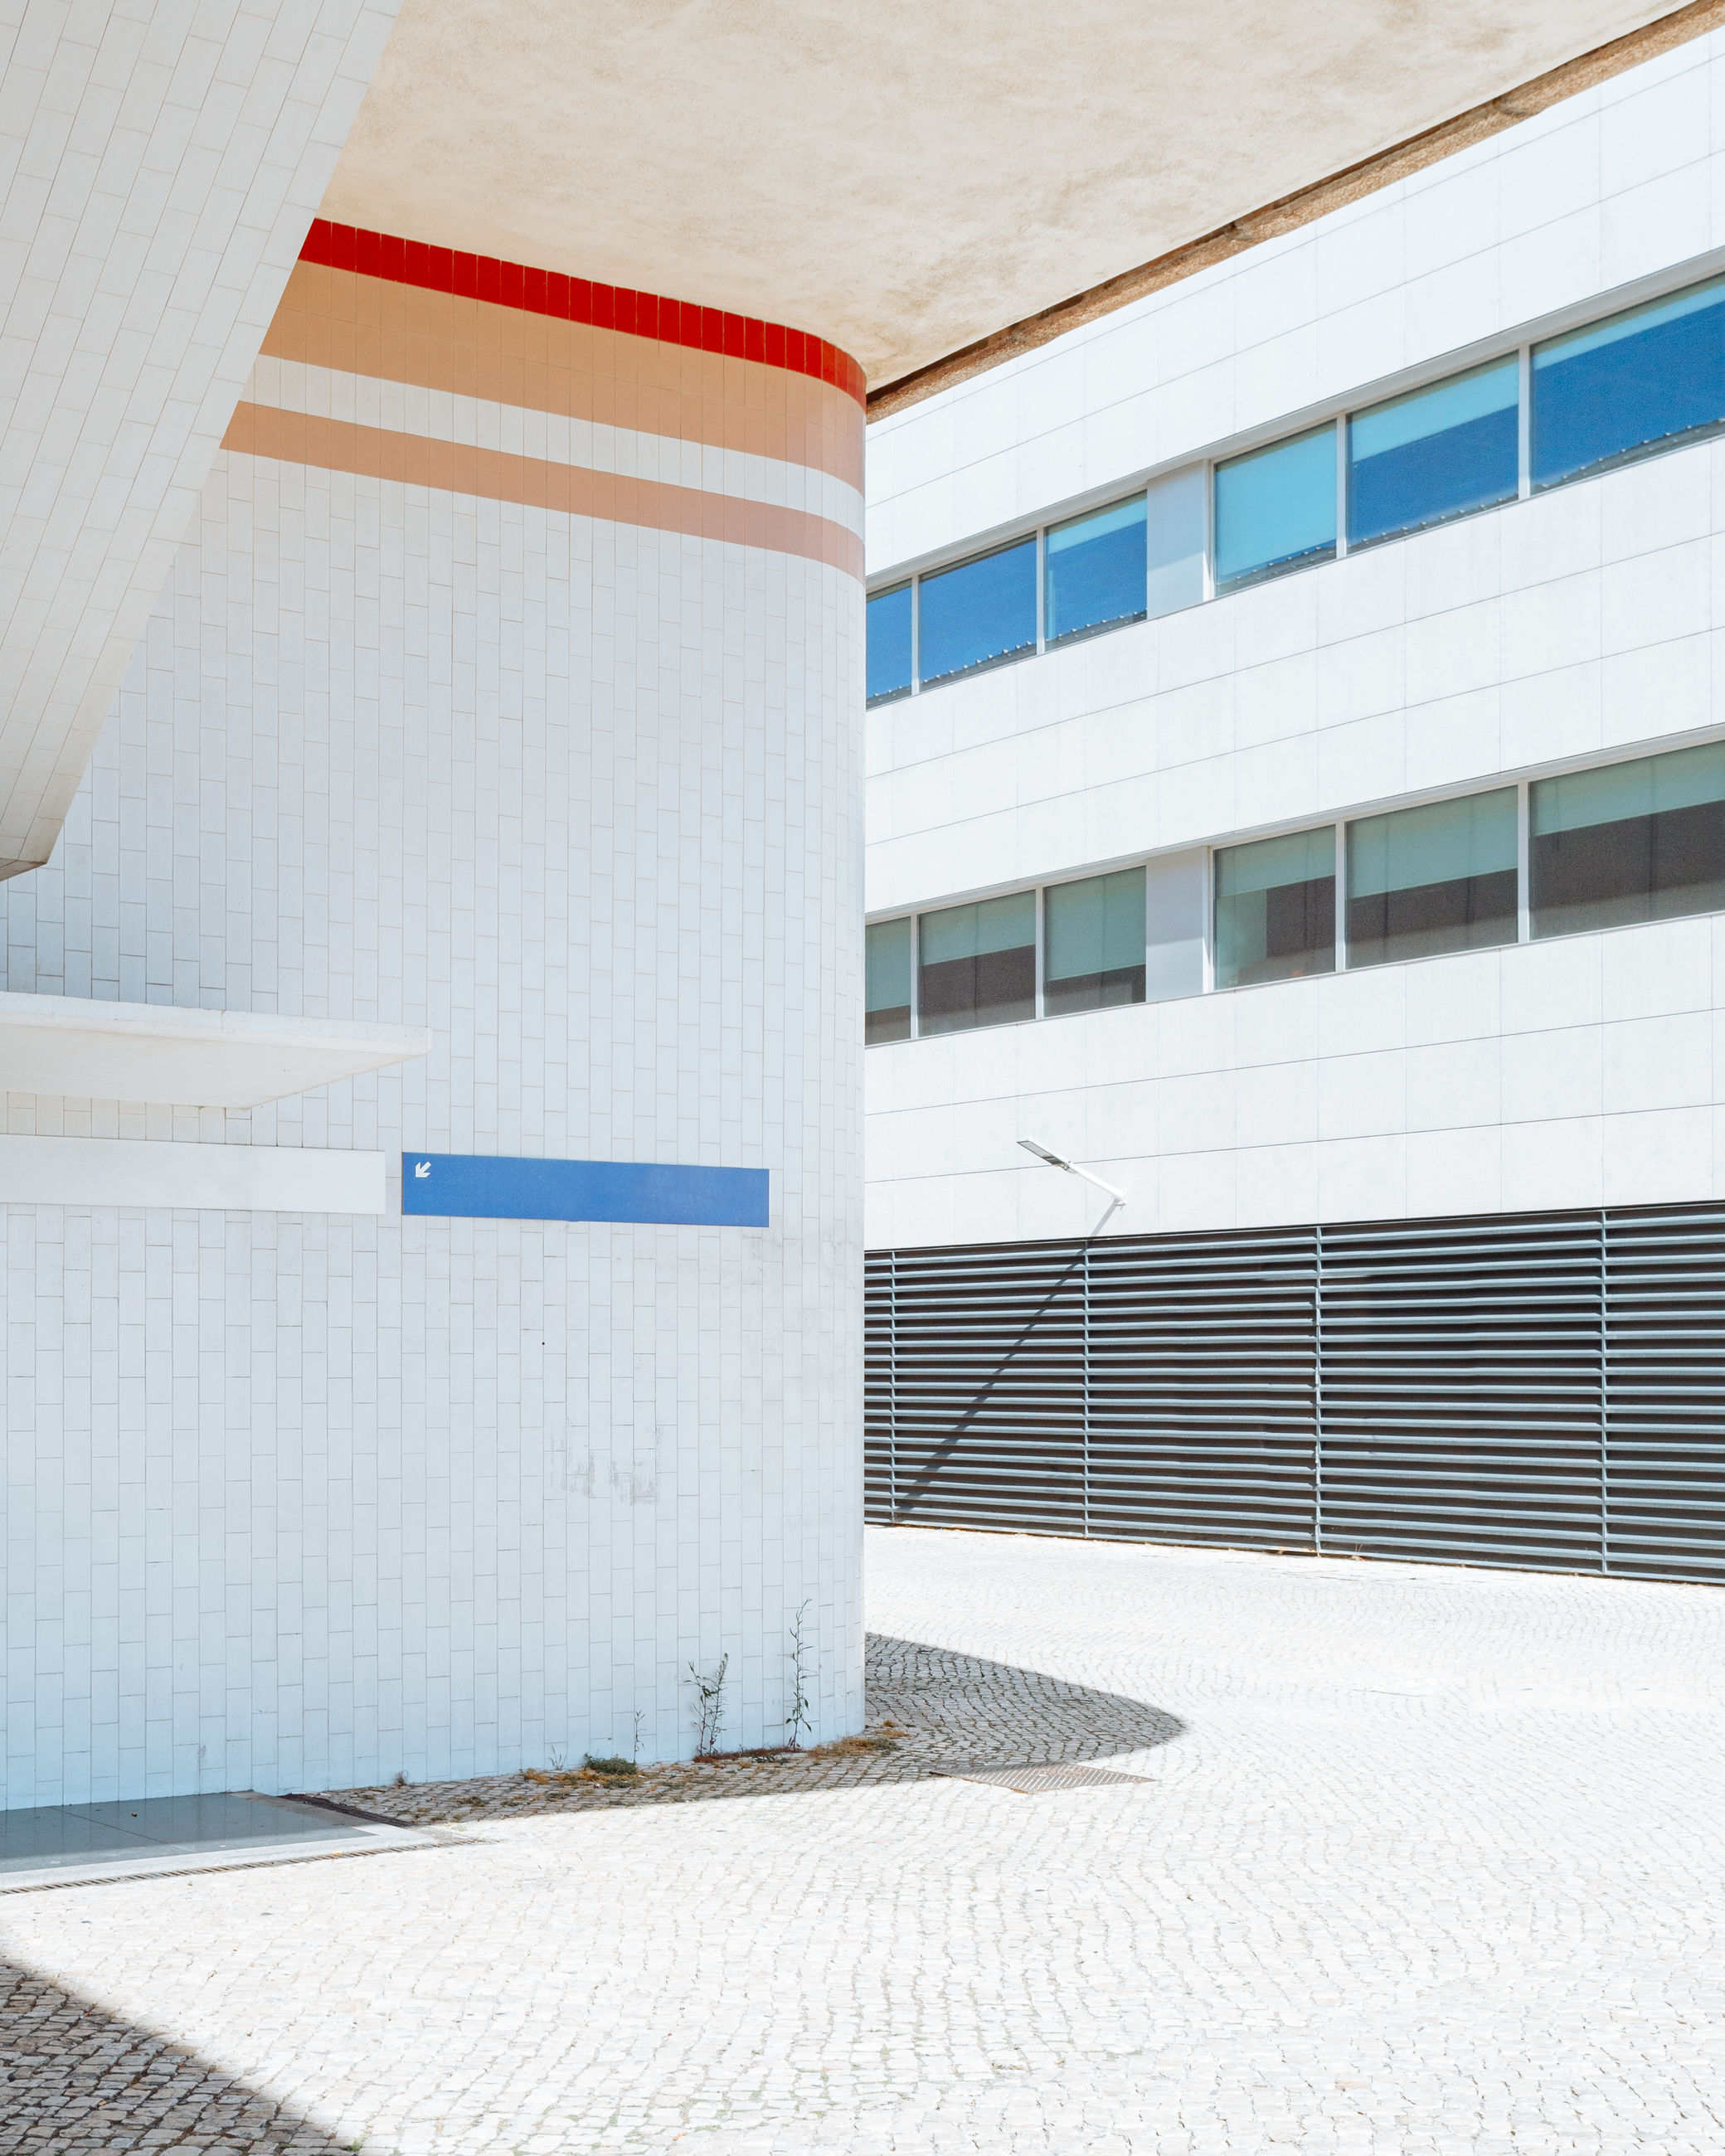 architecture, built structure, building exterior, building, no people, day, sunlight, nature, city, outdoors, white color, wall - building feature, blue, footpath, pattern, window, house, modern, flooring, wall